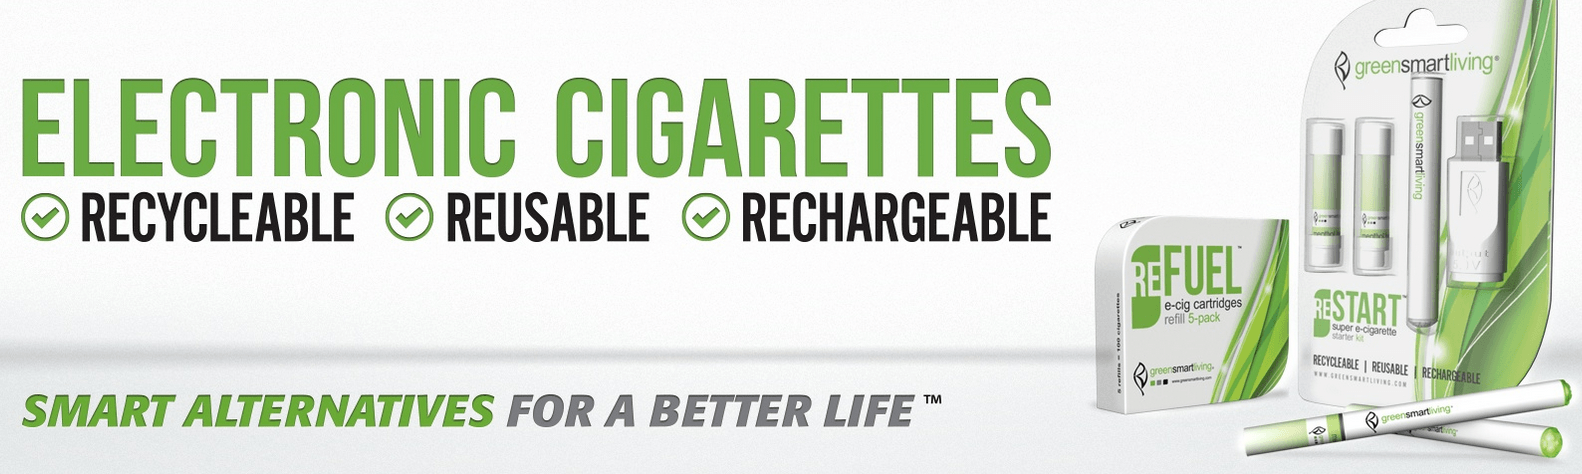 GreenSmartLiving e-cigarette